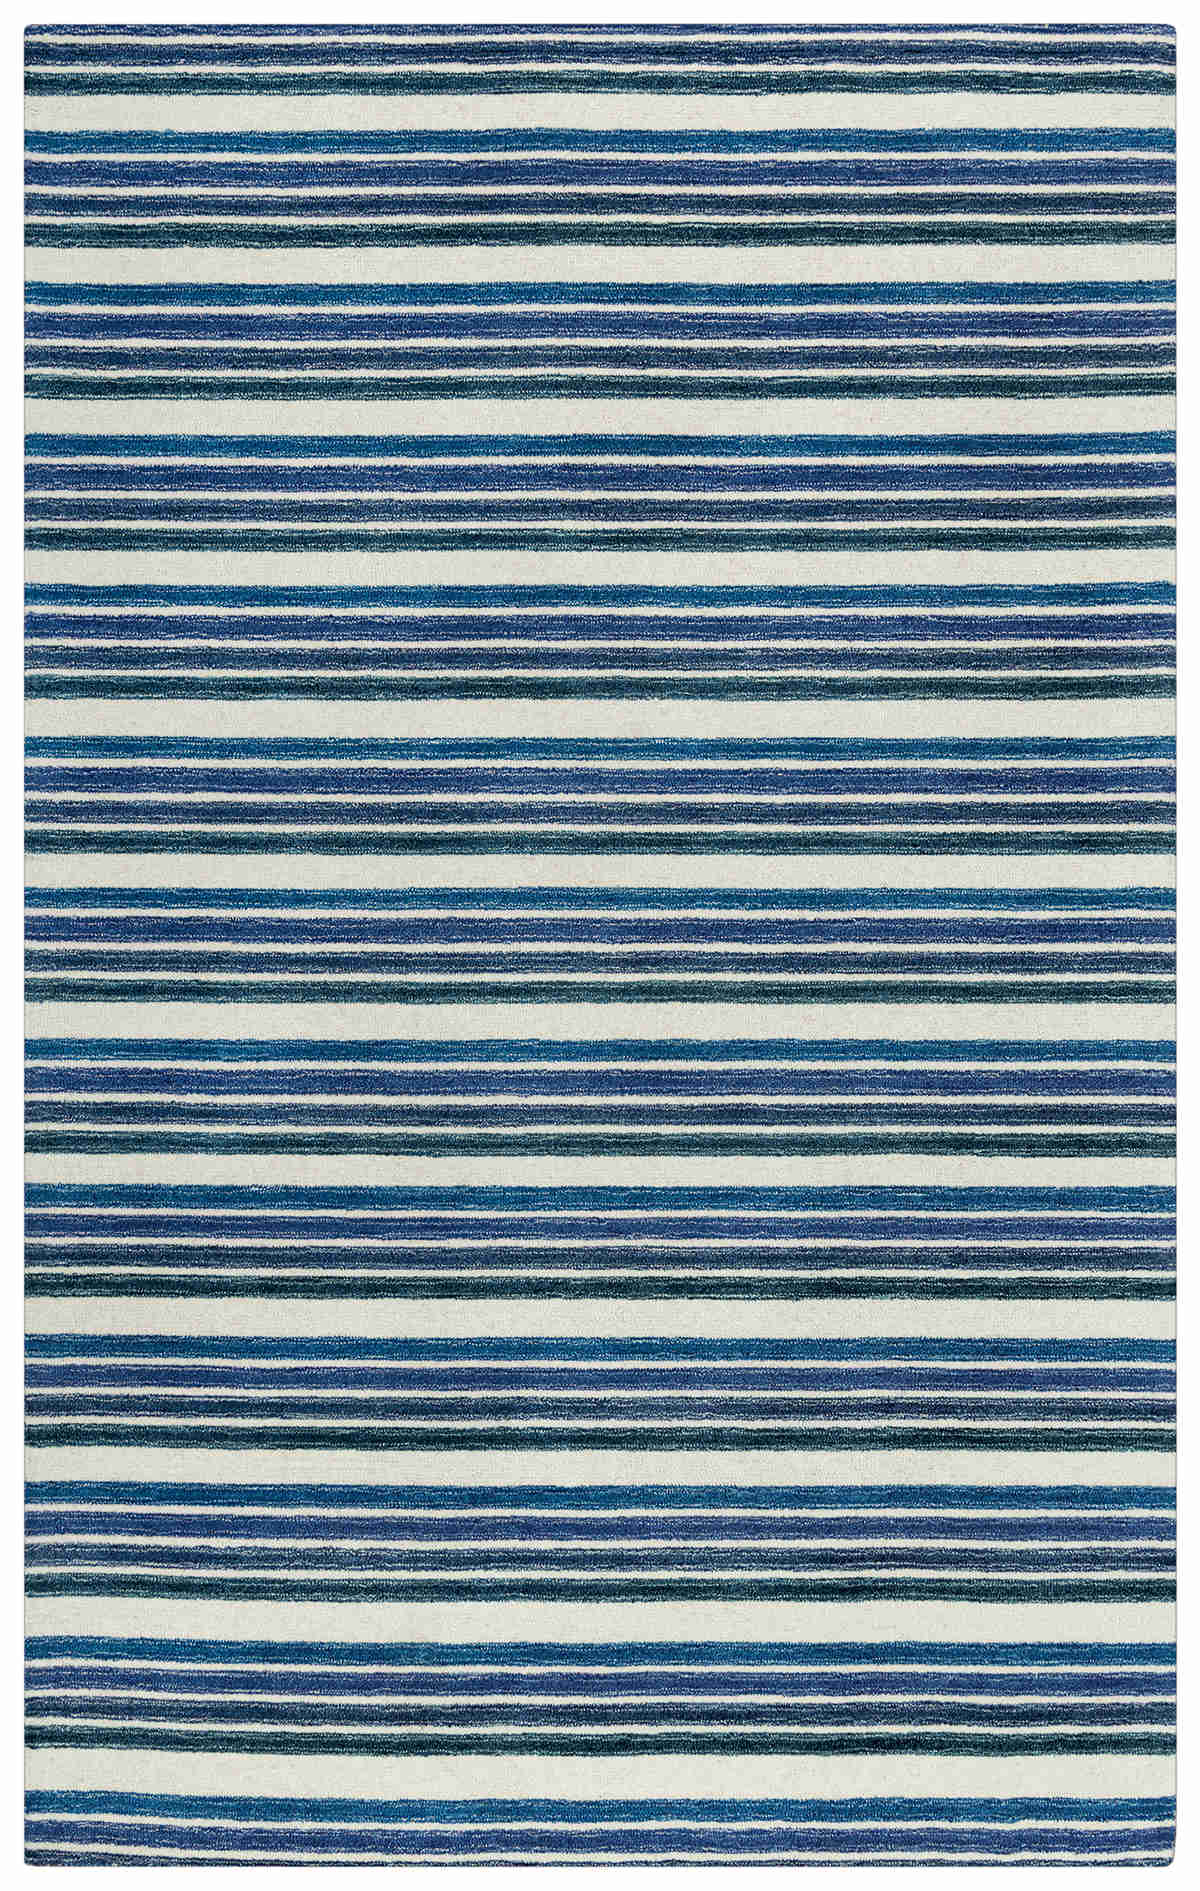 Rizzy Home  Tetra Transtional Blue Rug Tet106